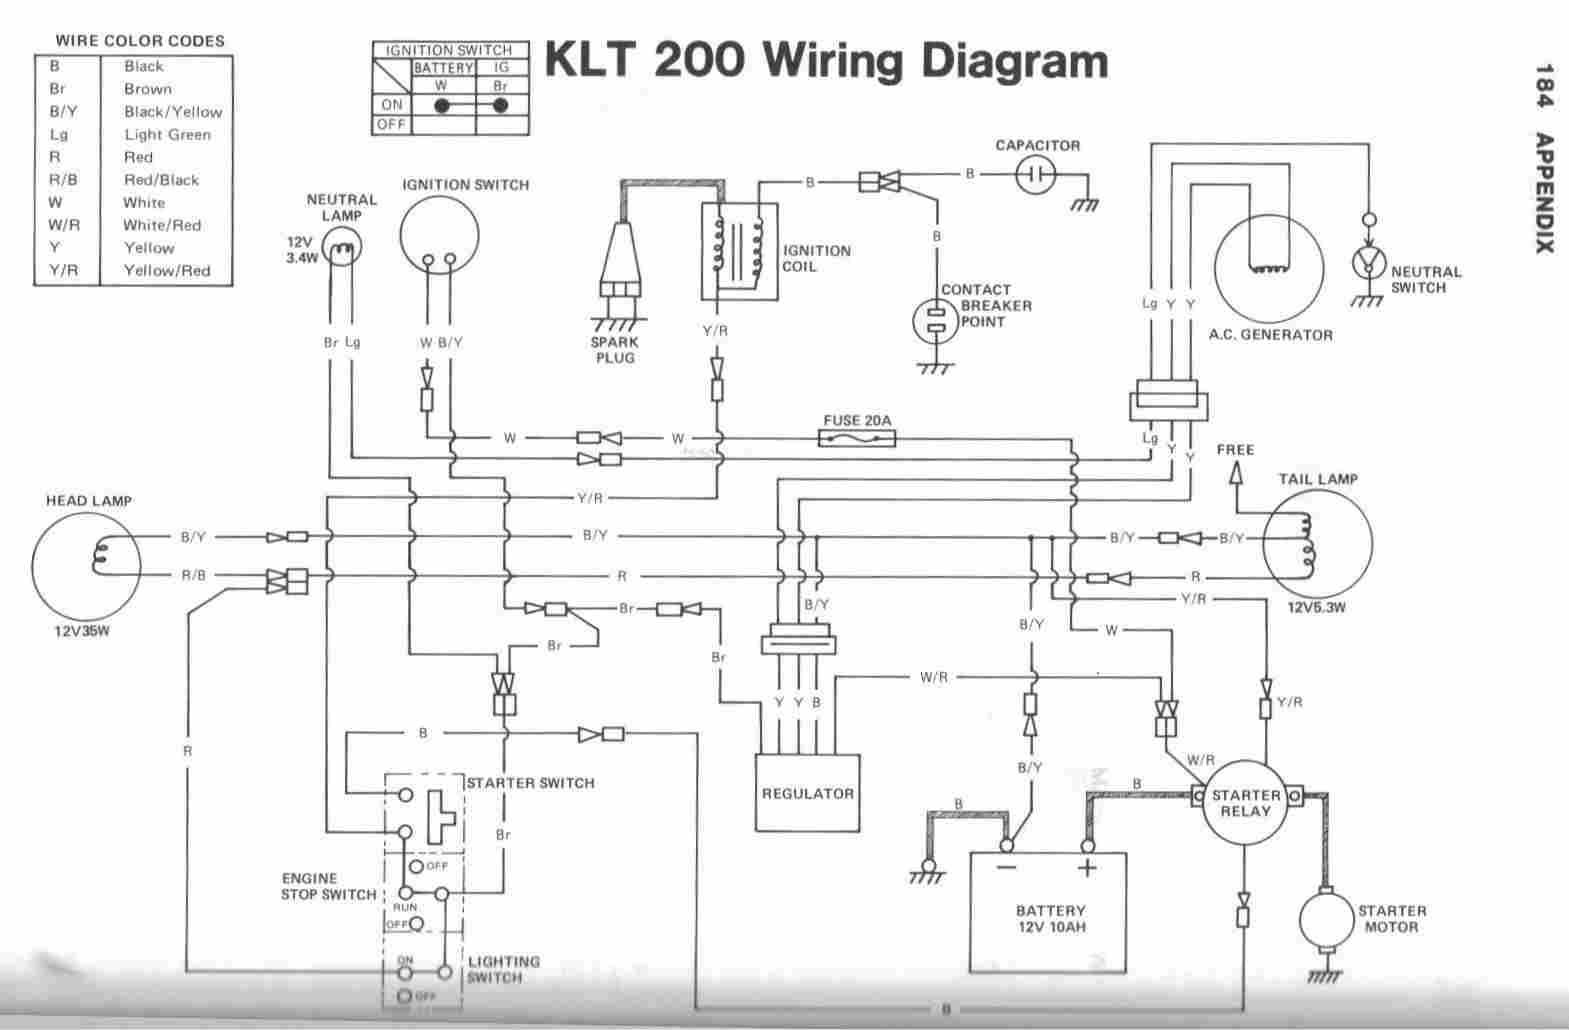 Wiring Diagrams House Lights Diagram Symbols Uk Residential Electrical Pdf Easy Routing